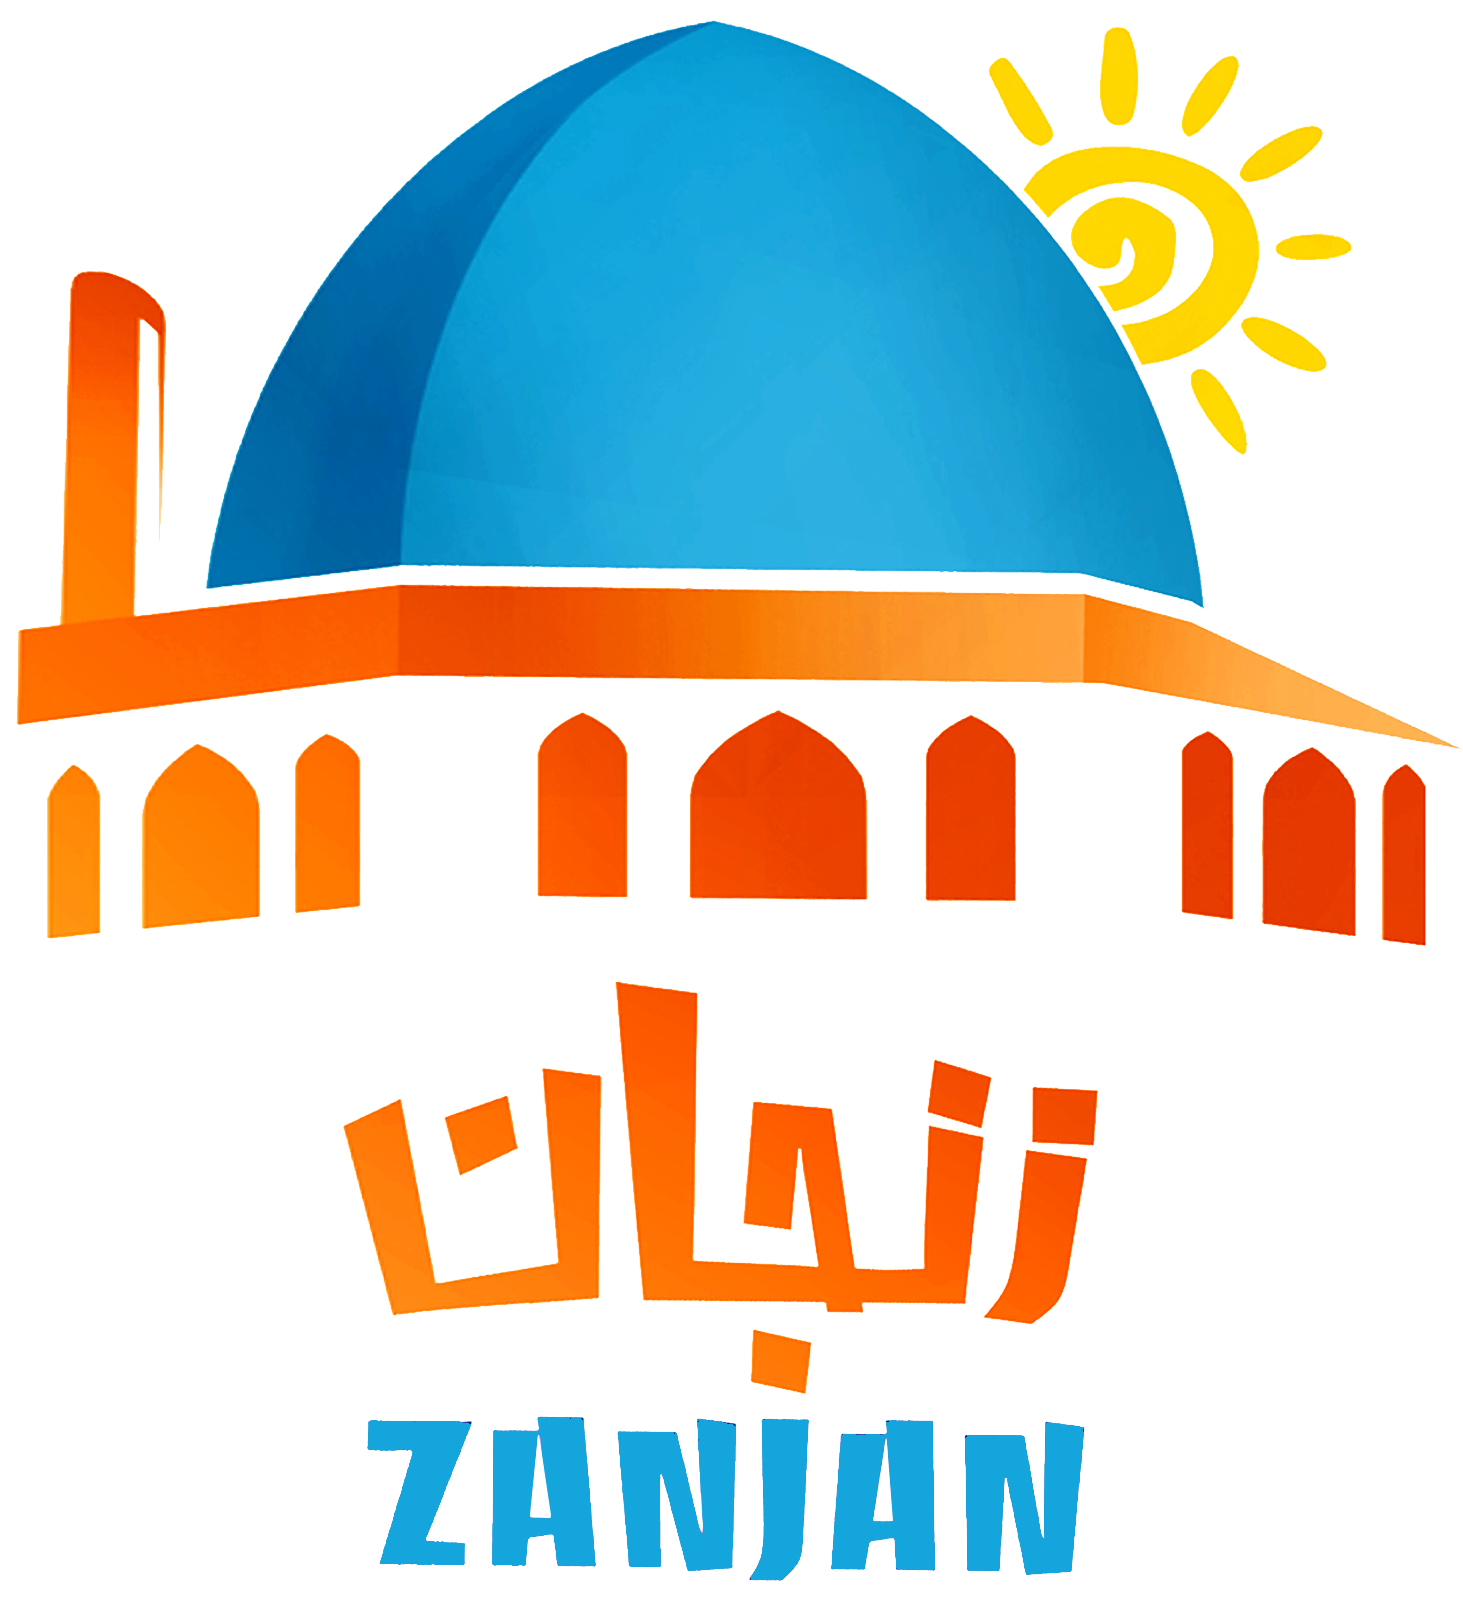 Zanjan Travel & Tourism Guide